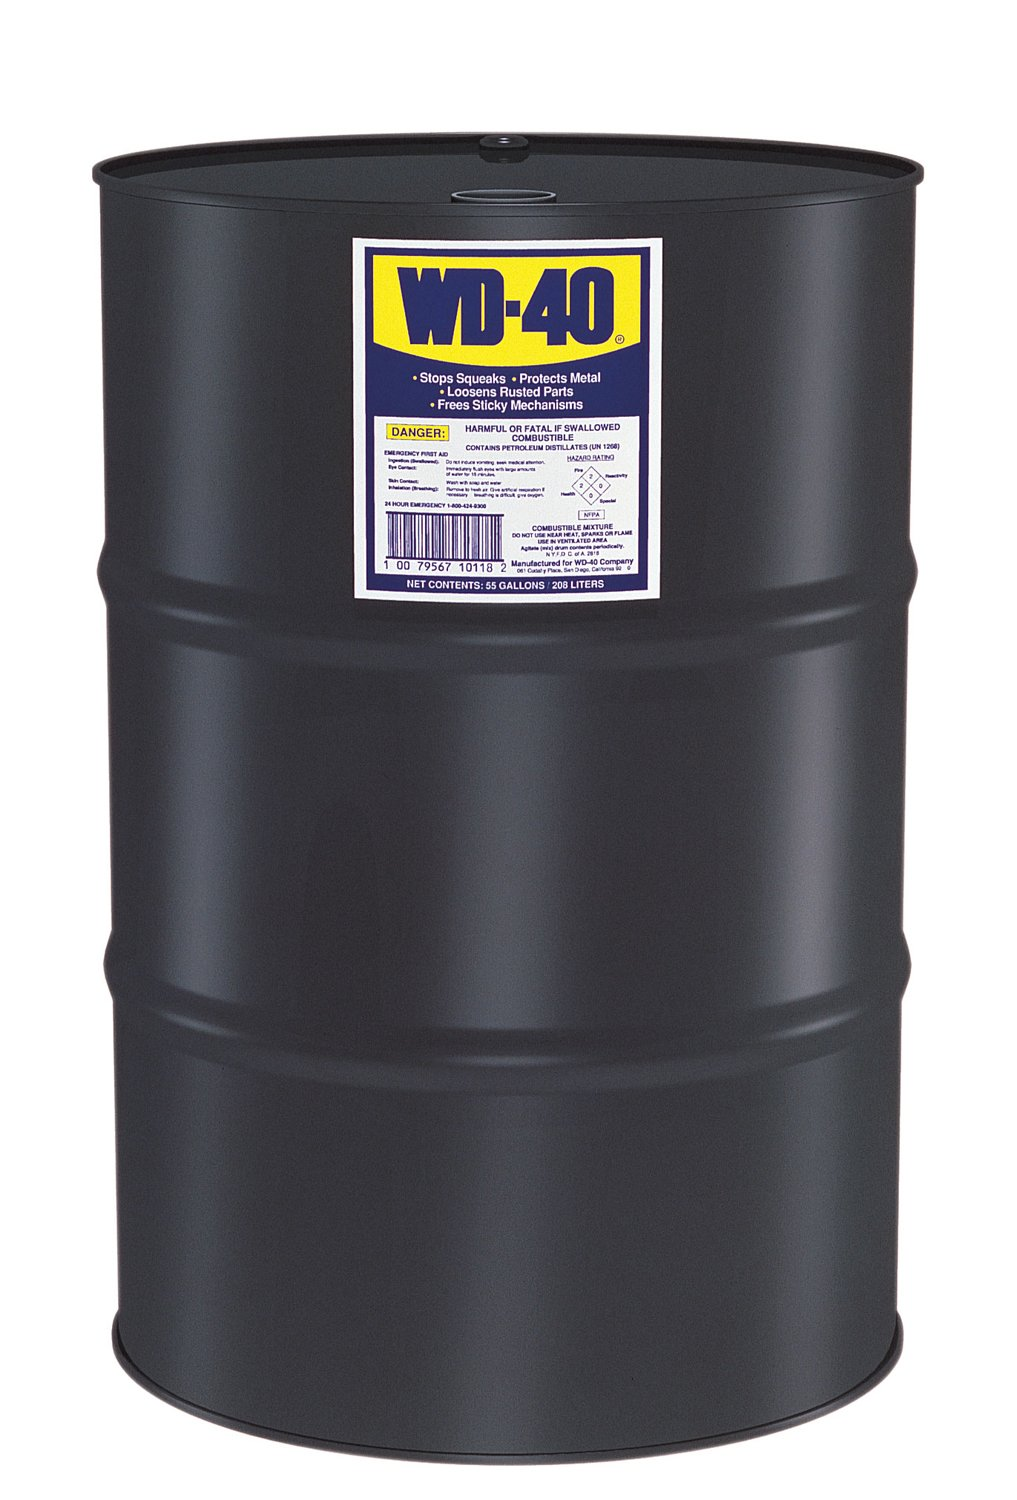 WD-40 Multi-Use Product, 55 - Gallon Drum